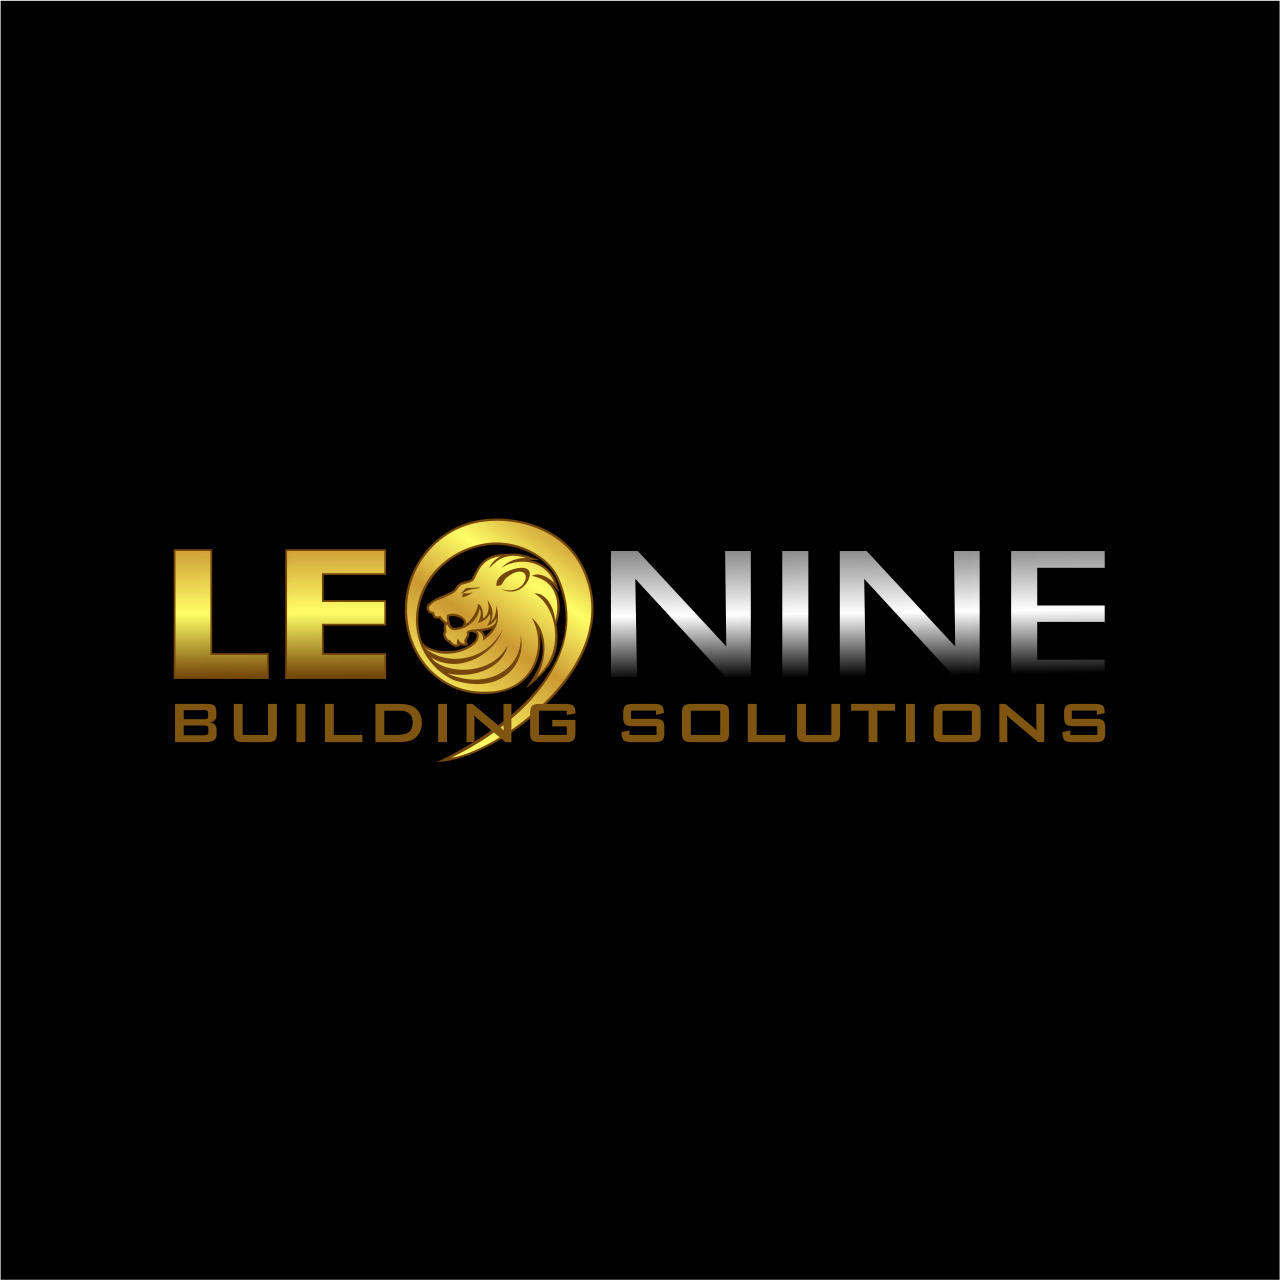 Leonine Building Solutions